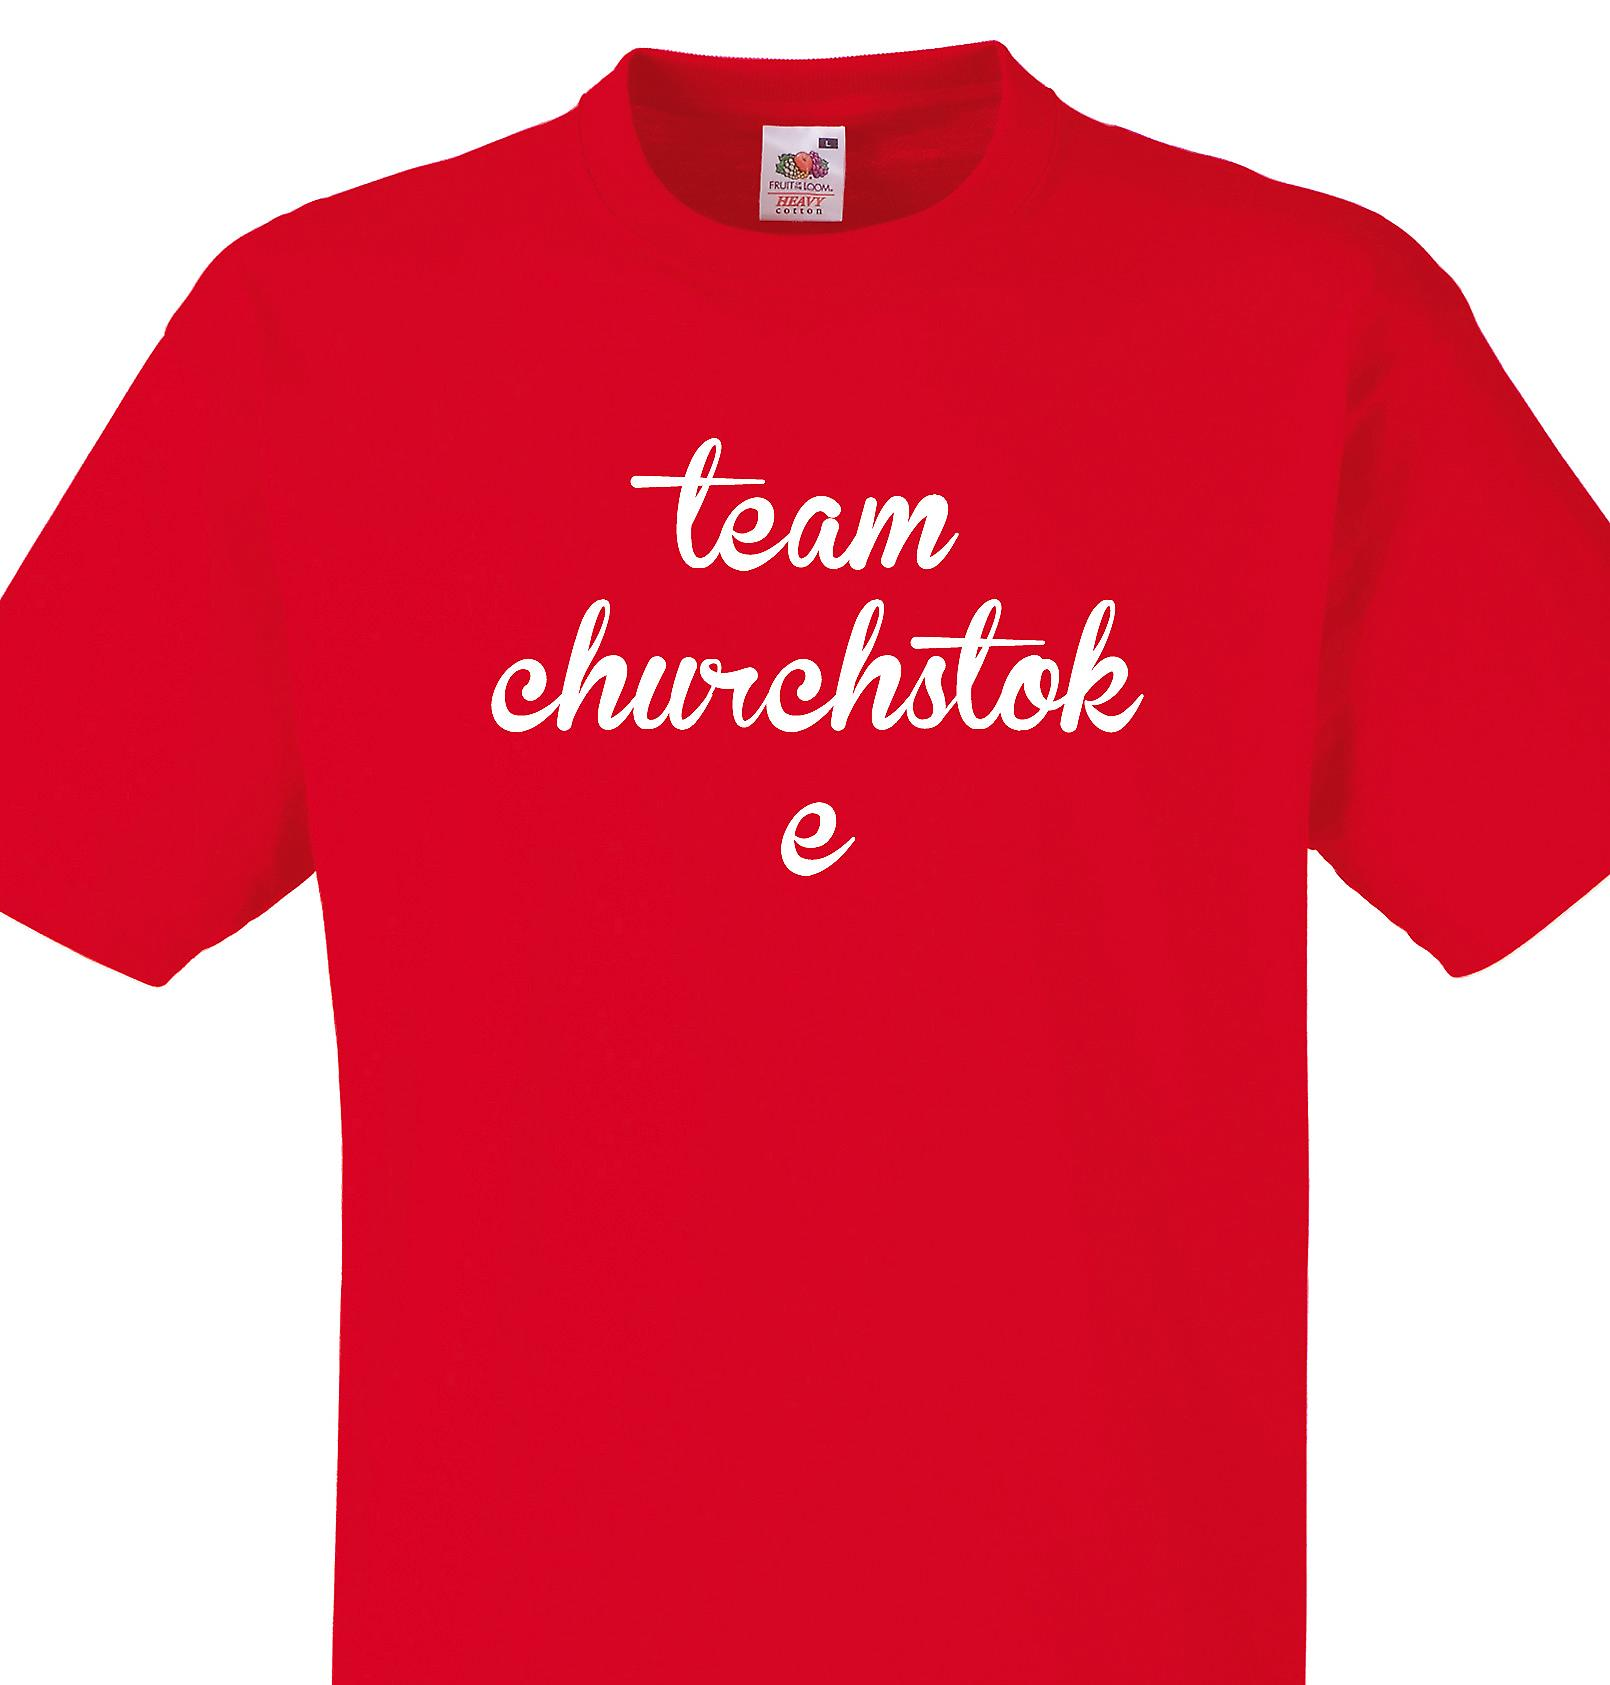 Team Churchstoke Red T shirt